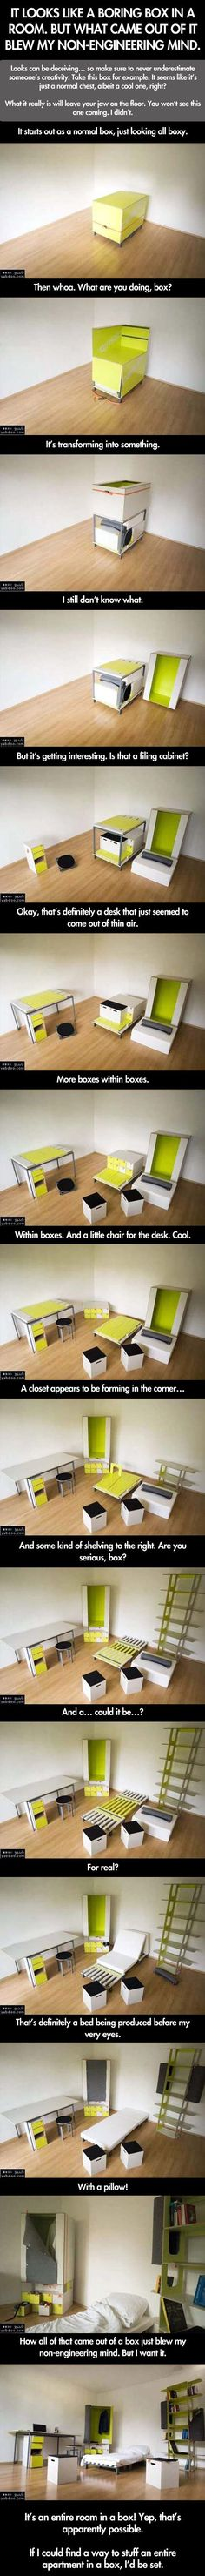 It looks like a boring box in a room. But what came out of it blew my non-engineering mind.